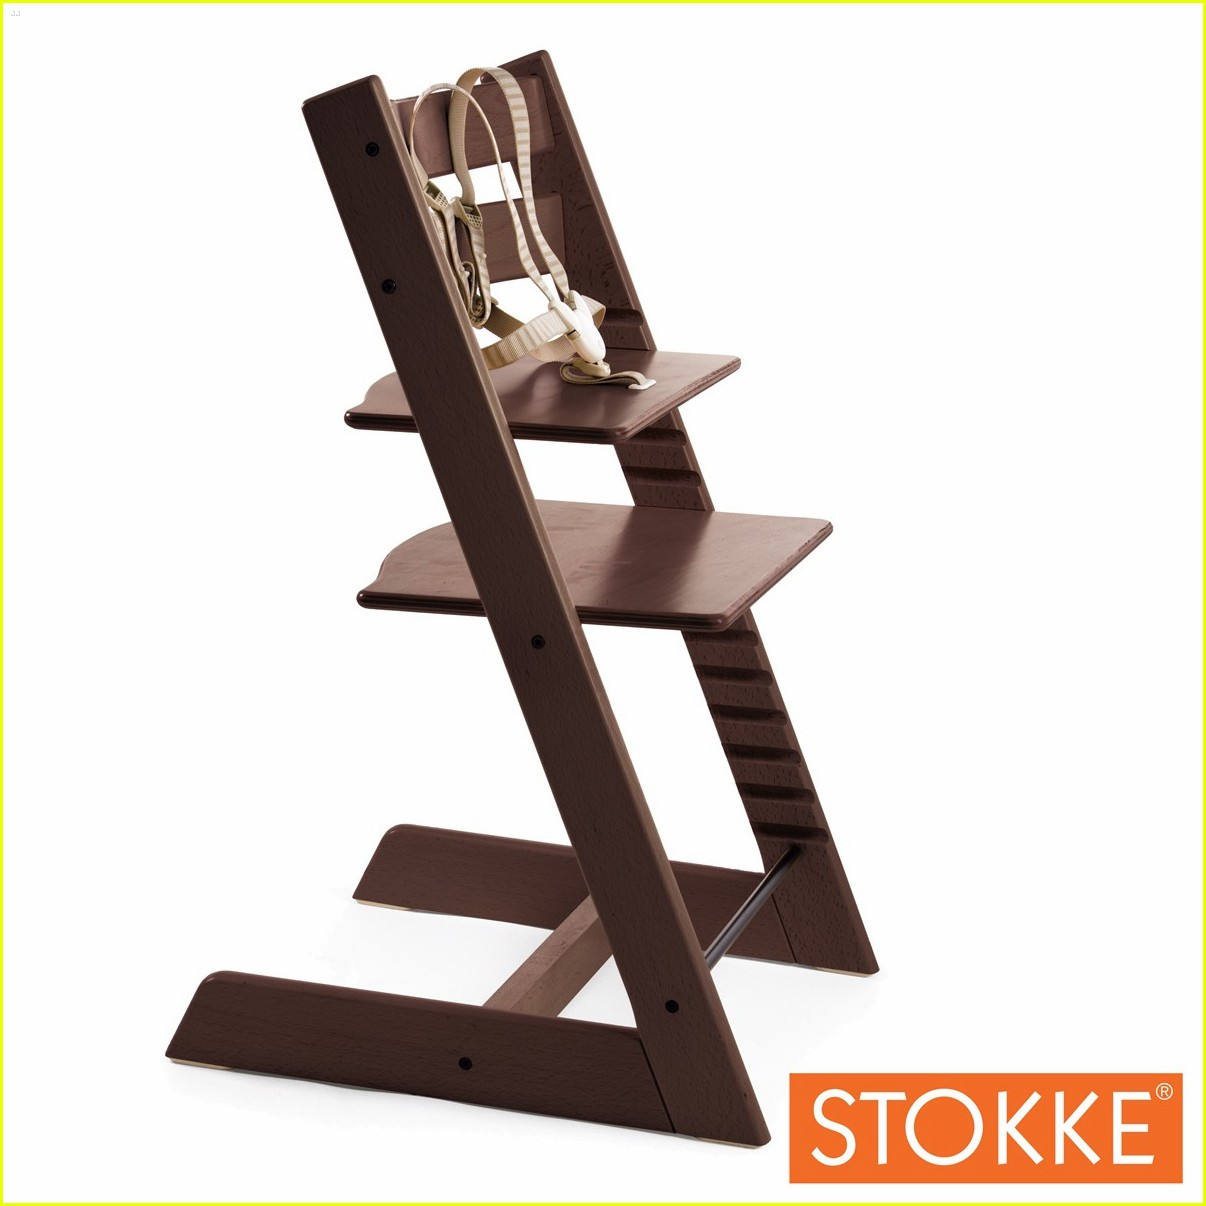 win a free stokke baby carrier chair photo 2817529. Black Bedroom Furniture Sets. Home Design Ideas